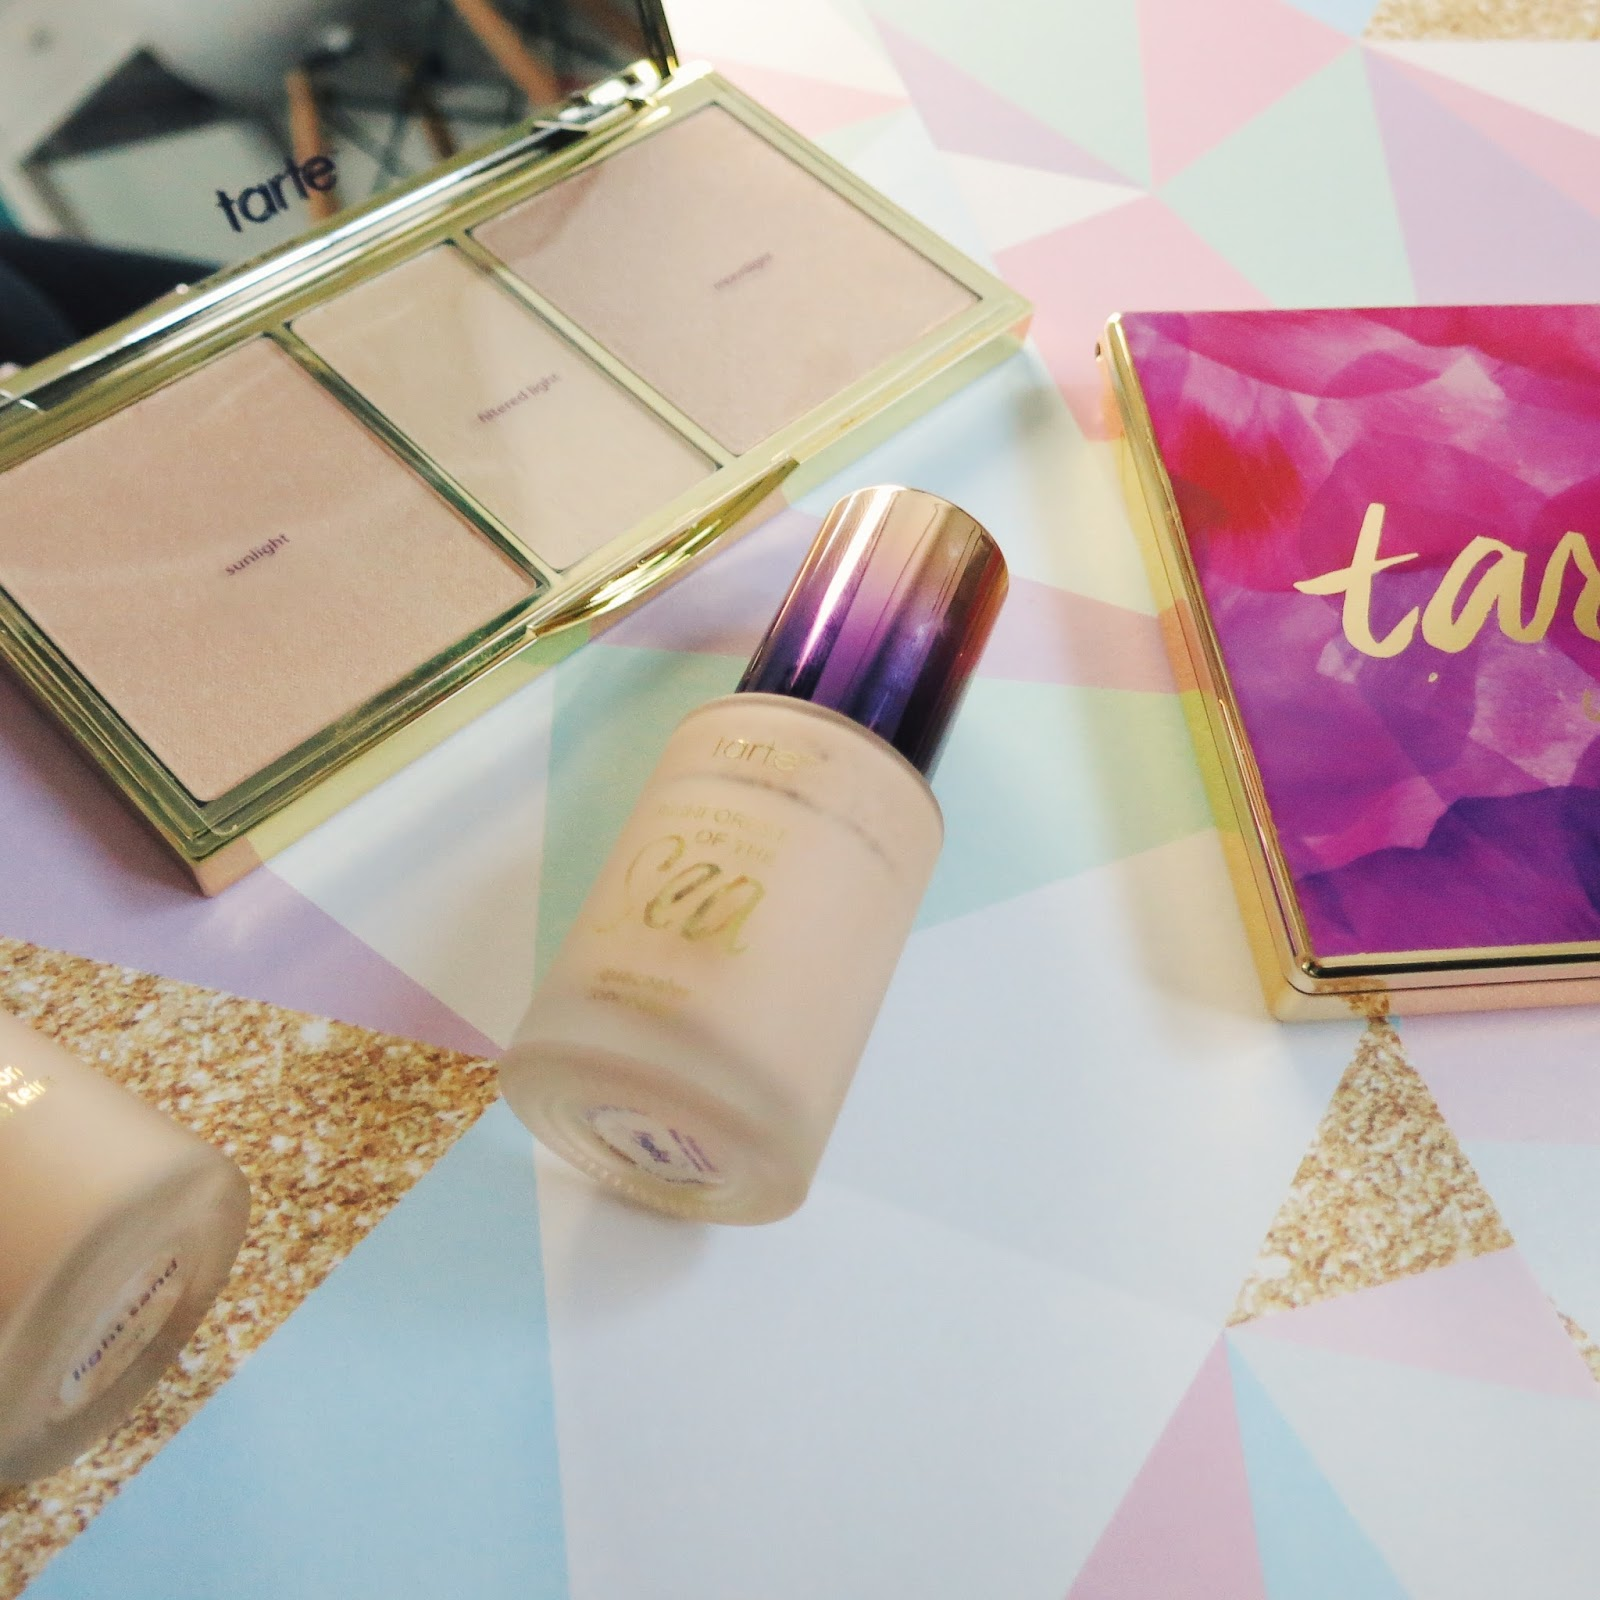 Get all your travel cosmetics by shopping the tarte to go collection at Tarte Cosmetics! Find amazing deals on shampoo, deodorant, sunscreen, and more! See site for details.